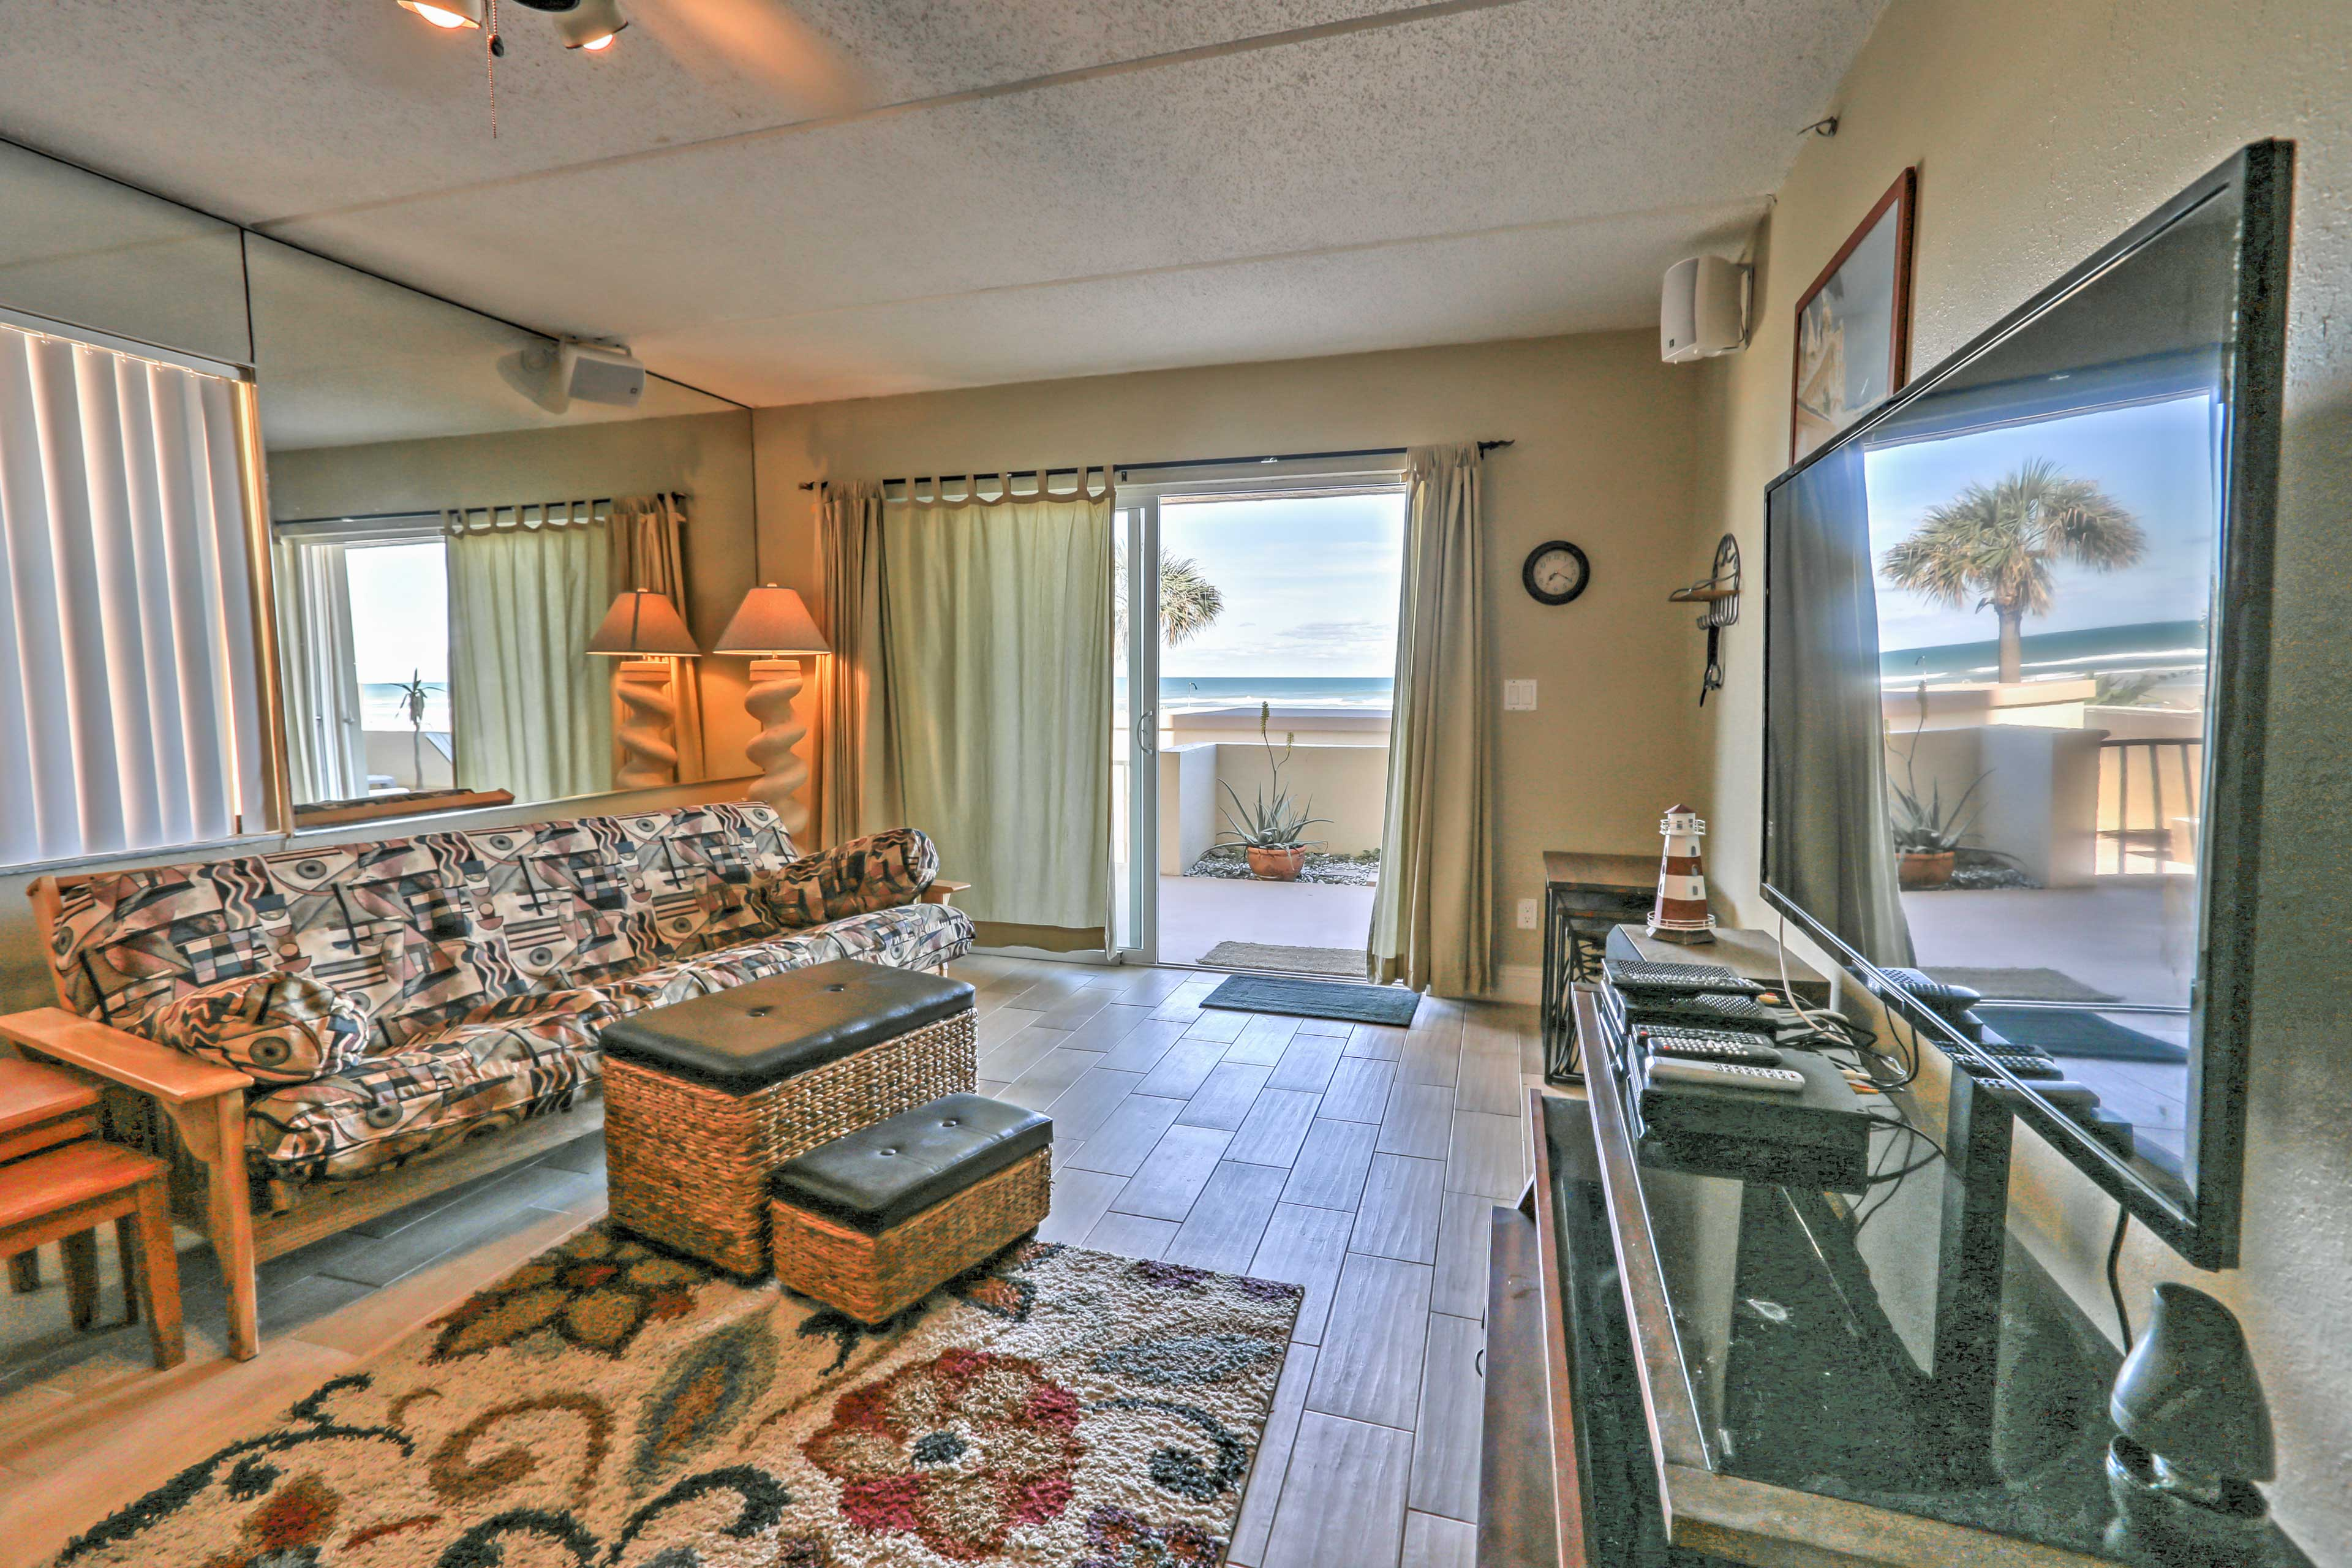 Lounge in the open living room and watch your favorite shows on the flat screen cable TV.